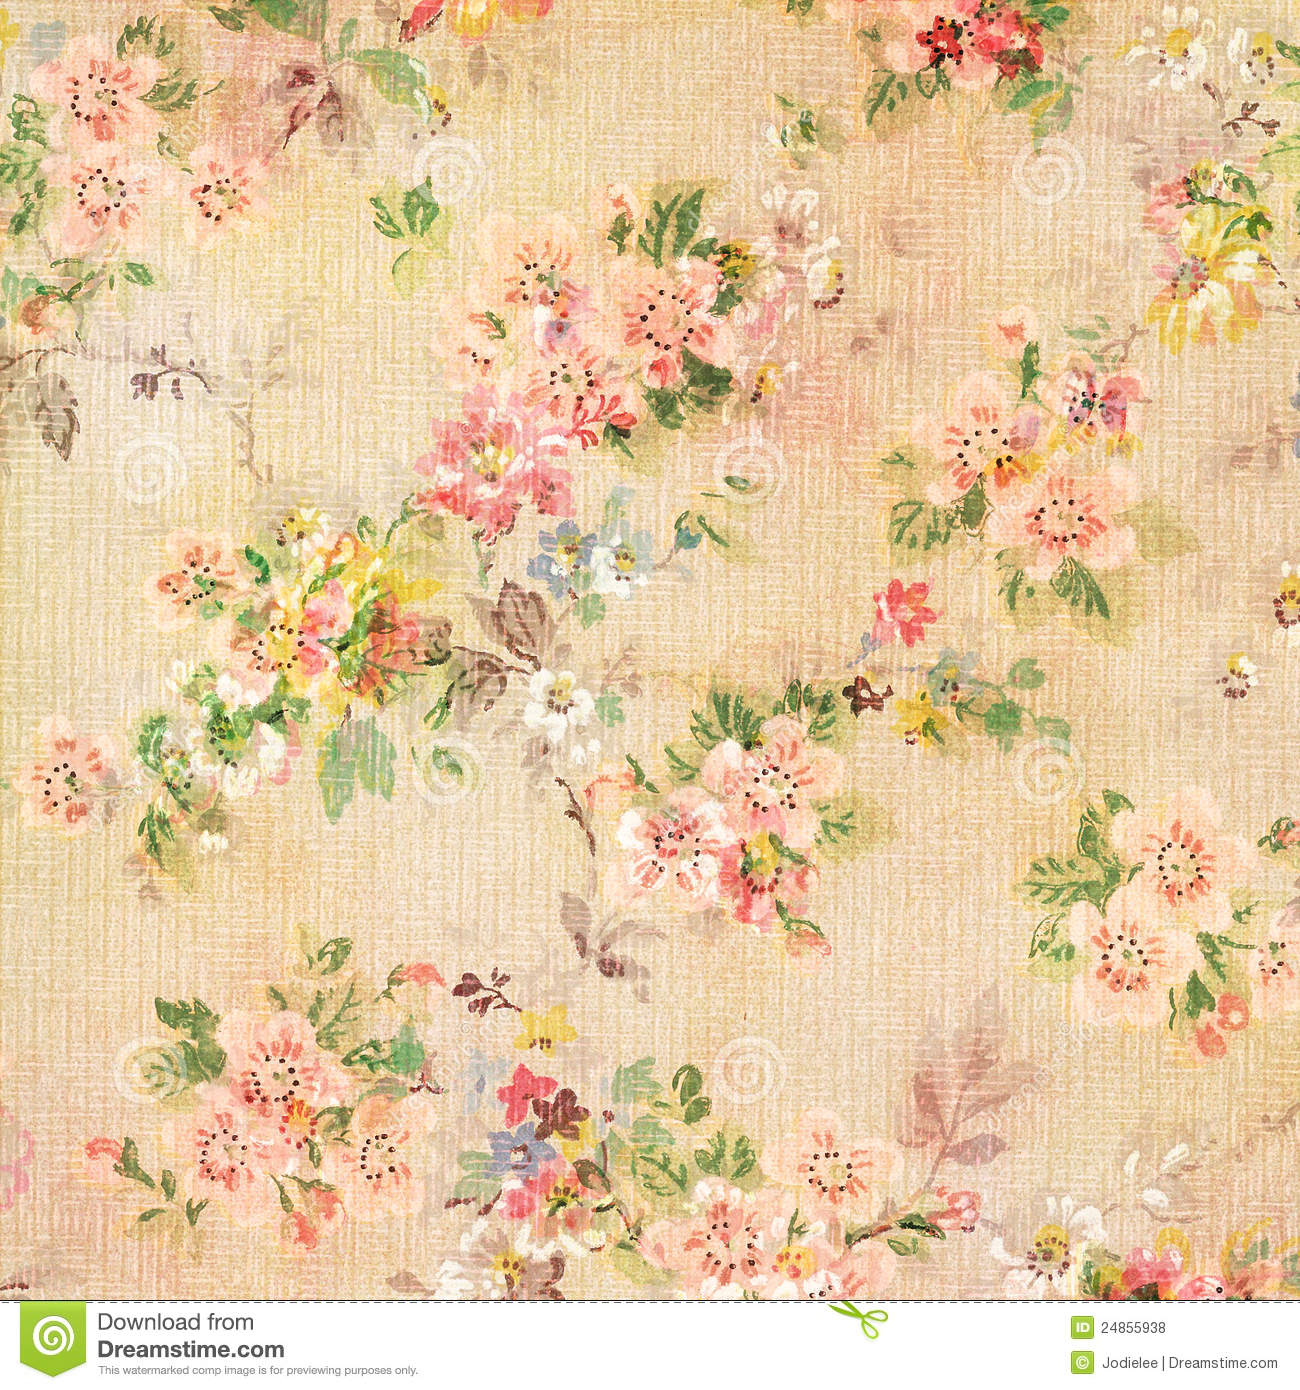 Shabby Chic Vintage Antique Rose Floral Wallpaper Stock Photo